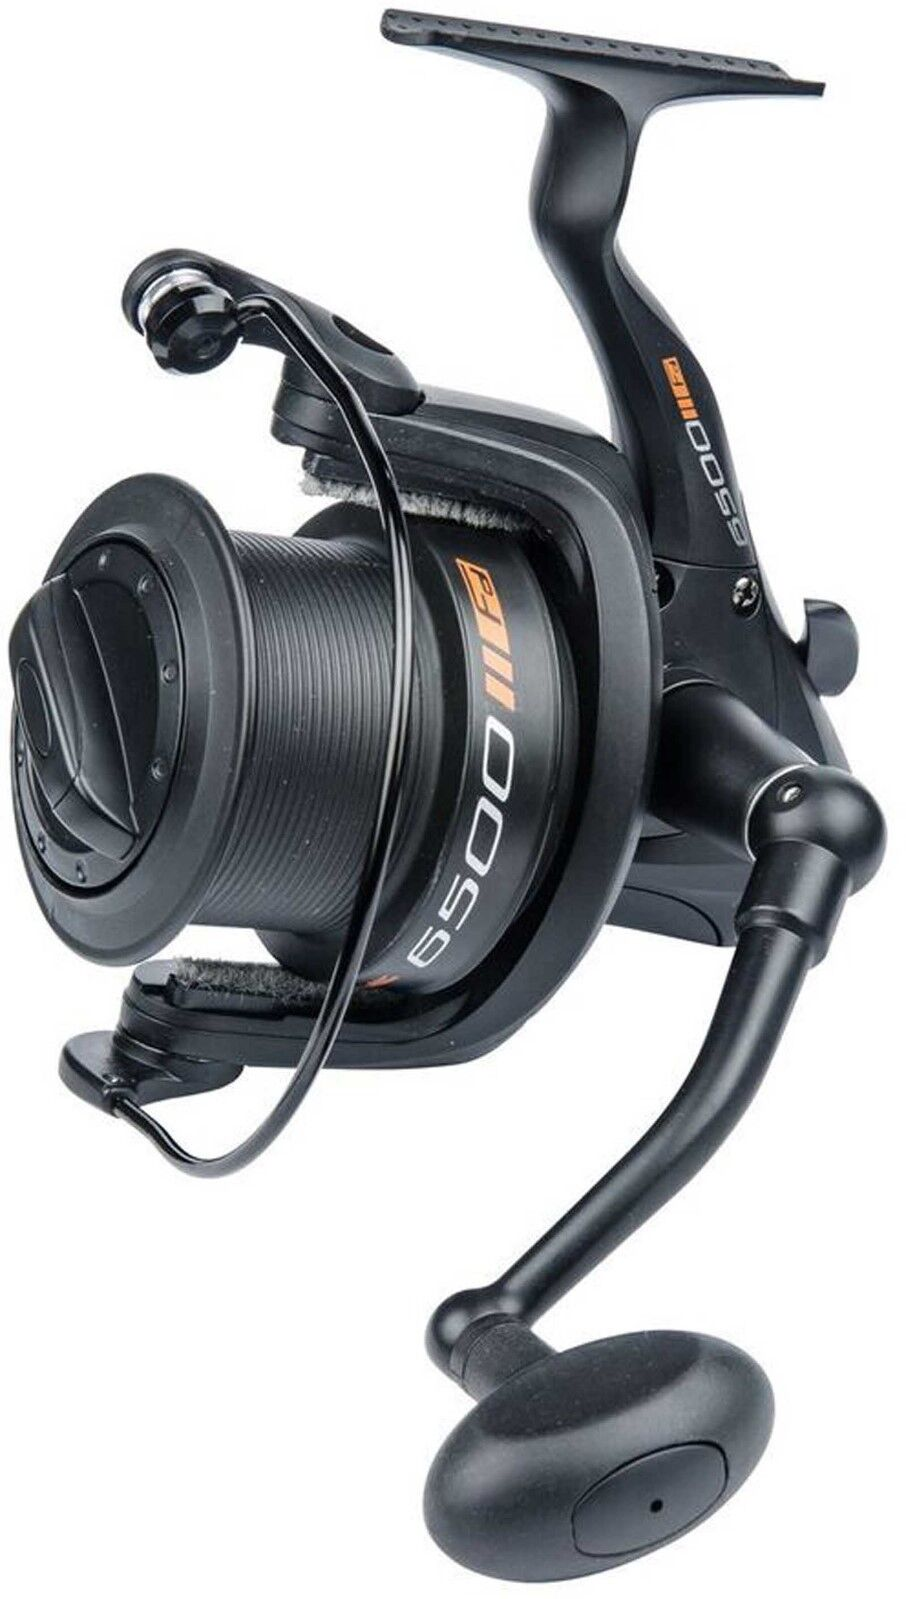 Leeda Rogue 6500 & 7500FS Big Pit Freespool Carp   Pike Fishing Reel